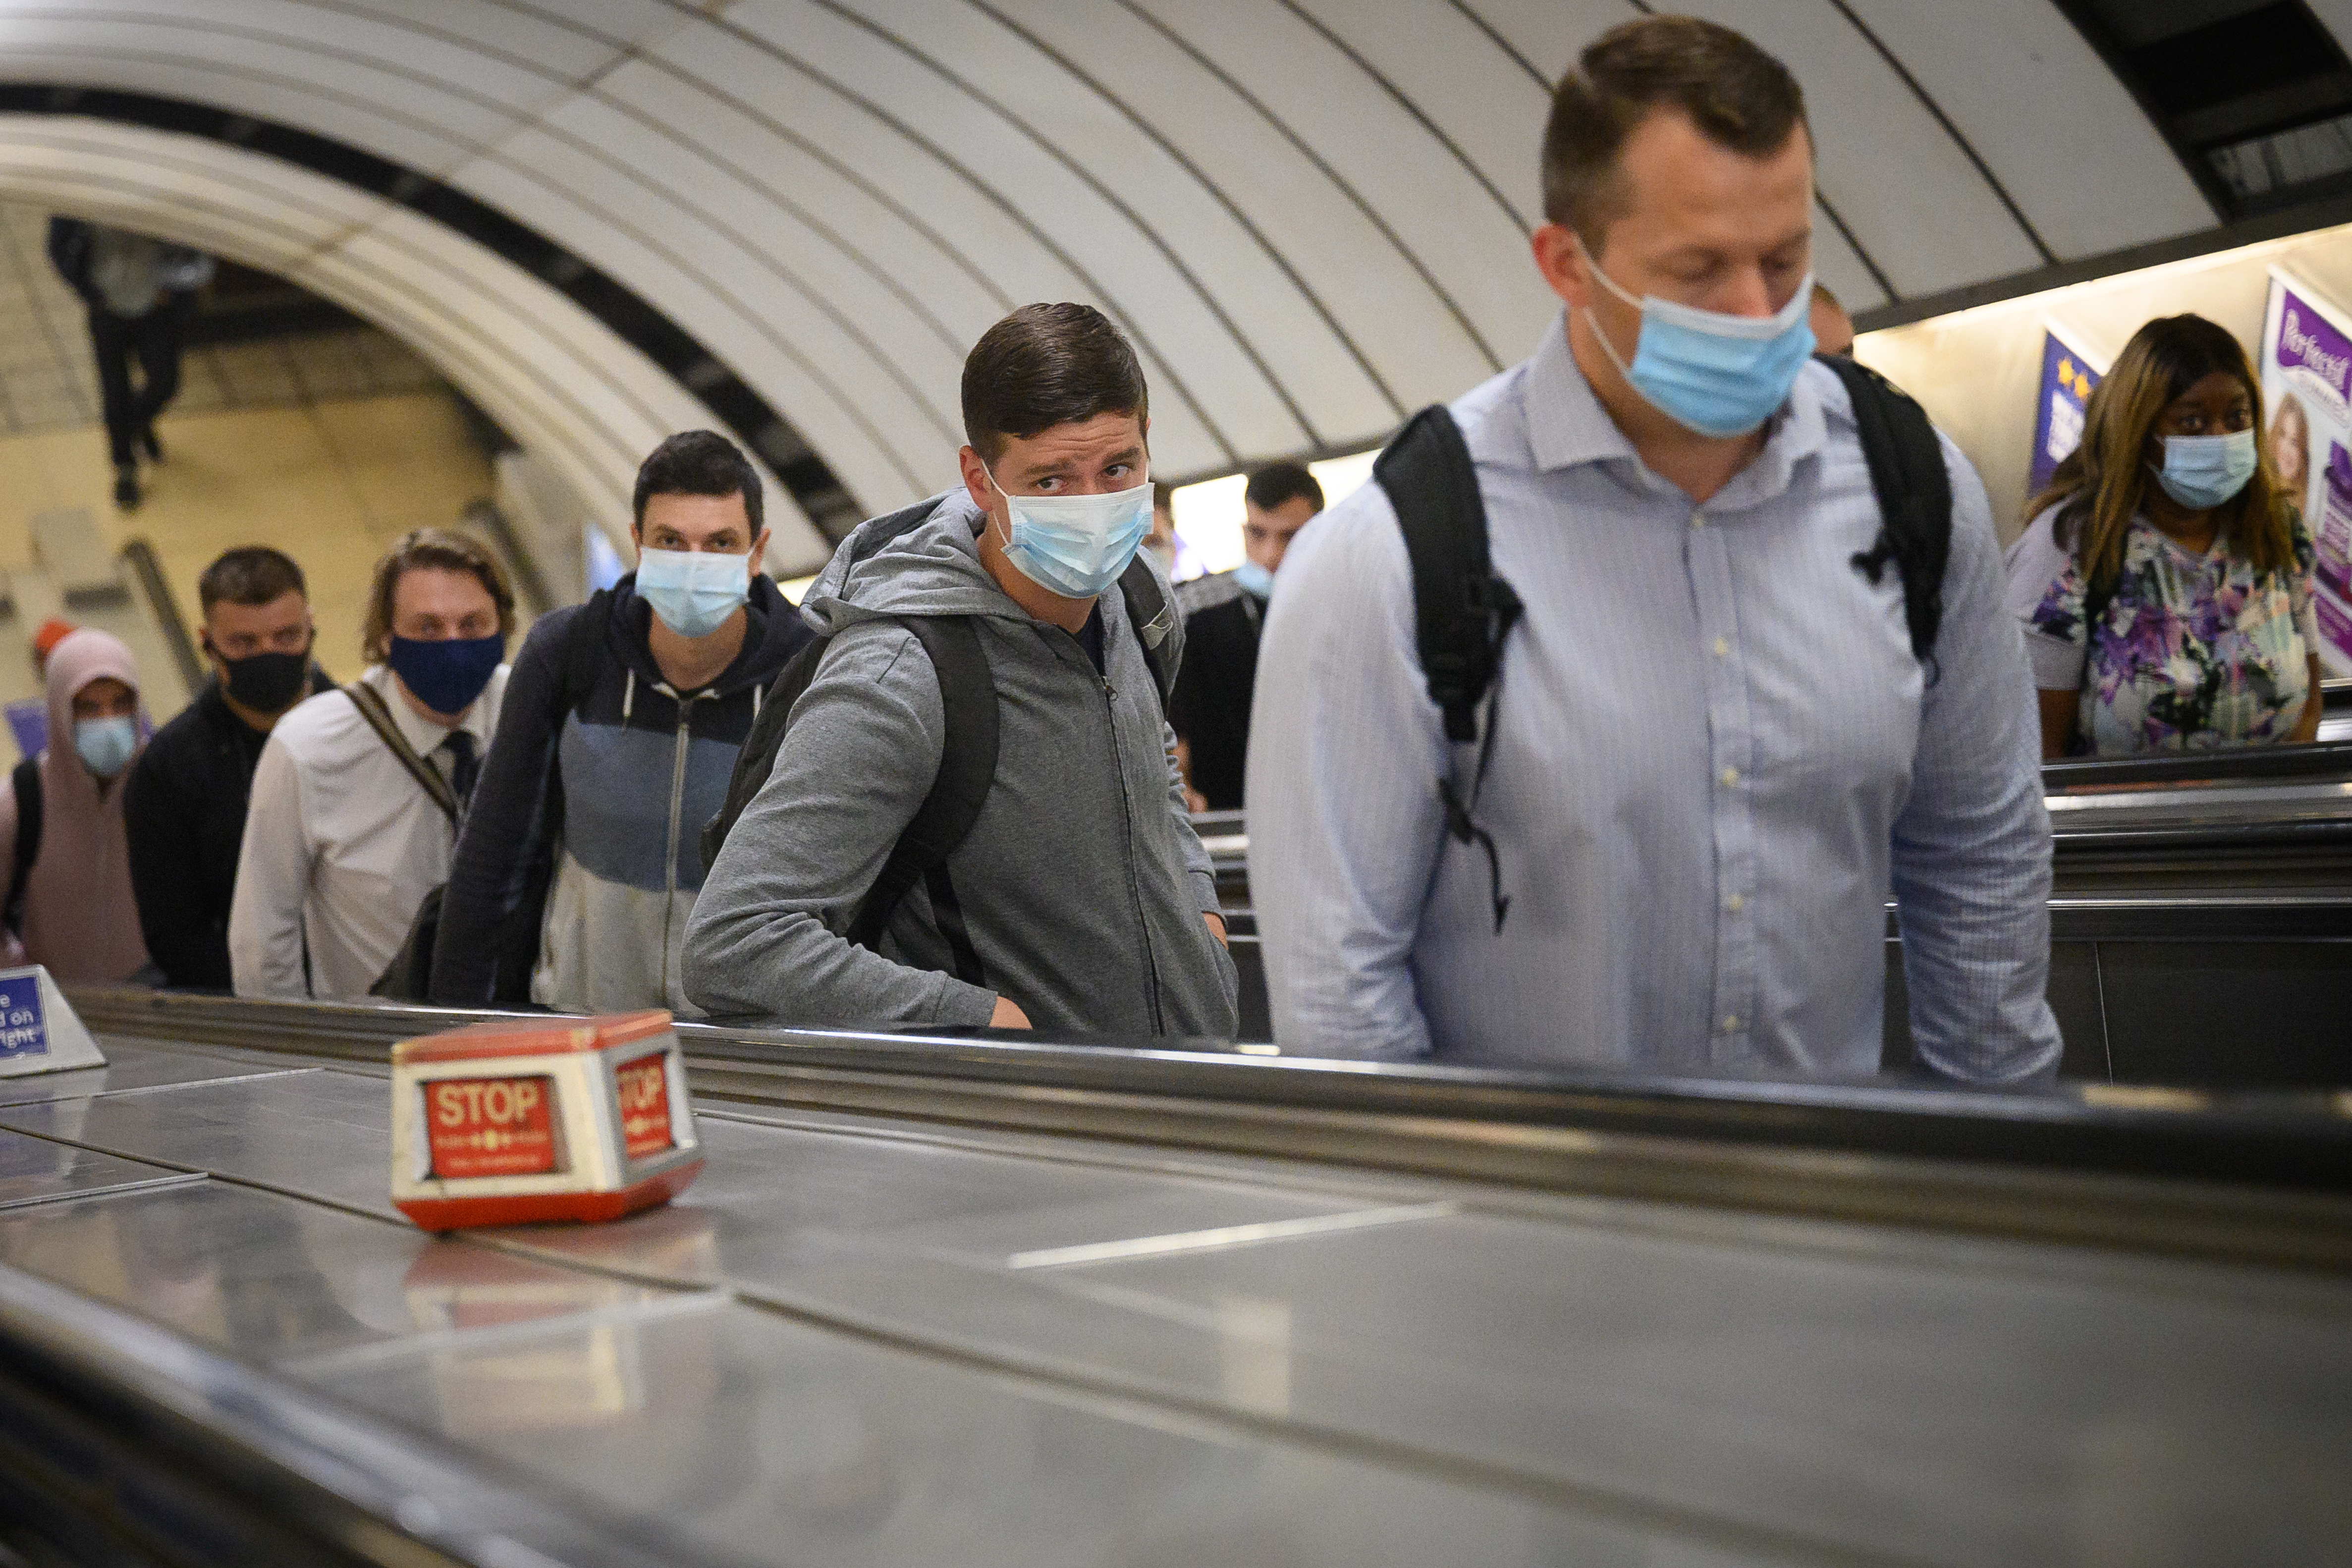 LONDON, ENGLAND - JUNE 15: Commuters wear face masks as they pass through Vauxhall underground station on the first day of their mandatory use while travelling on public transport, on June 15, 2020 in London, England. The British government have relaxed coronavirus lockdown laws significantly from Monday June 15, allowing zoos, safari parks and non-essential shops to open to visitors.  Places of worship will allow individual prayers and protective facemasks become mandatory on London Transport.  (Photo by Leon Neal/Getty Images)